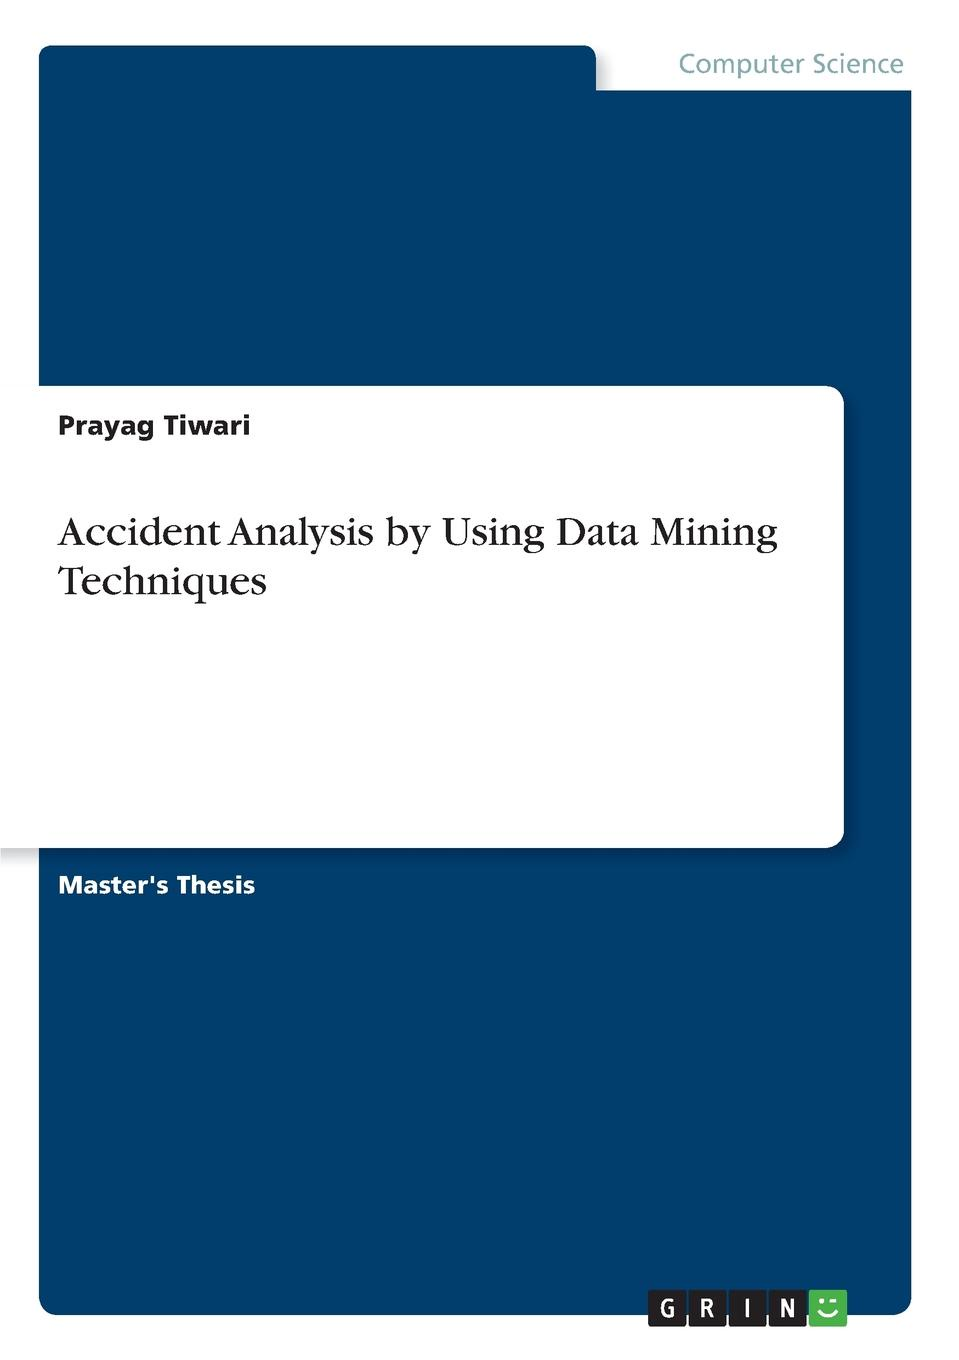 Prayag Tiwari Accident Analysis by Using Data Mining Techniques an accident in august